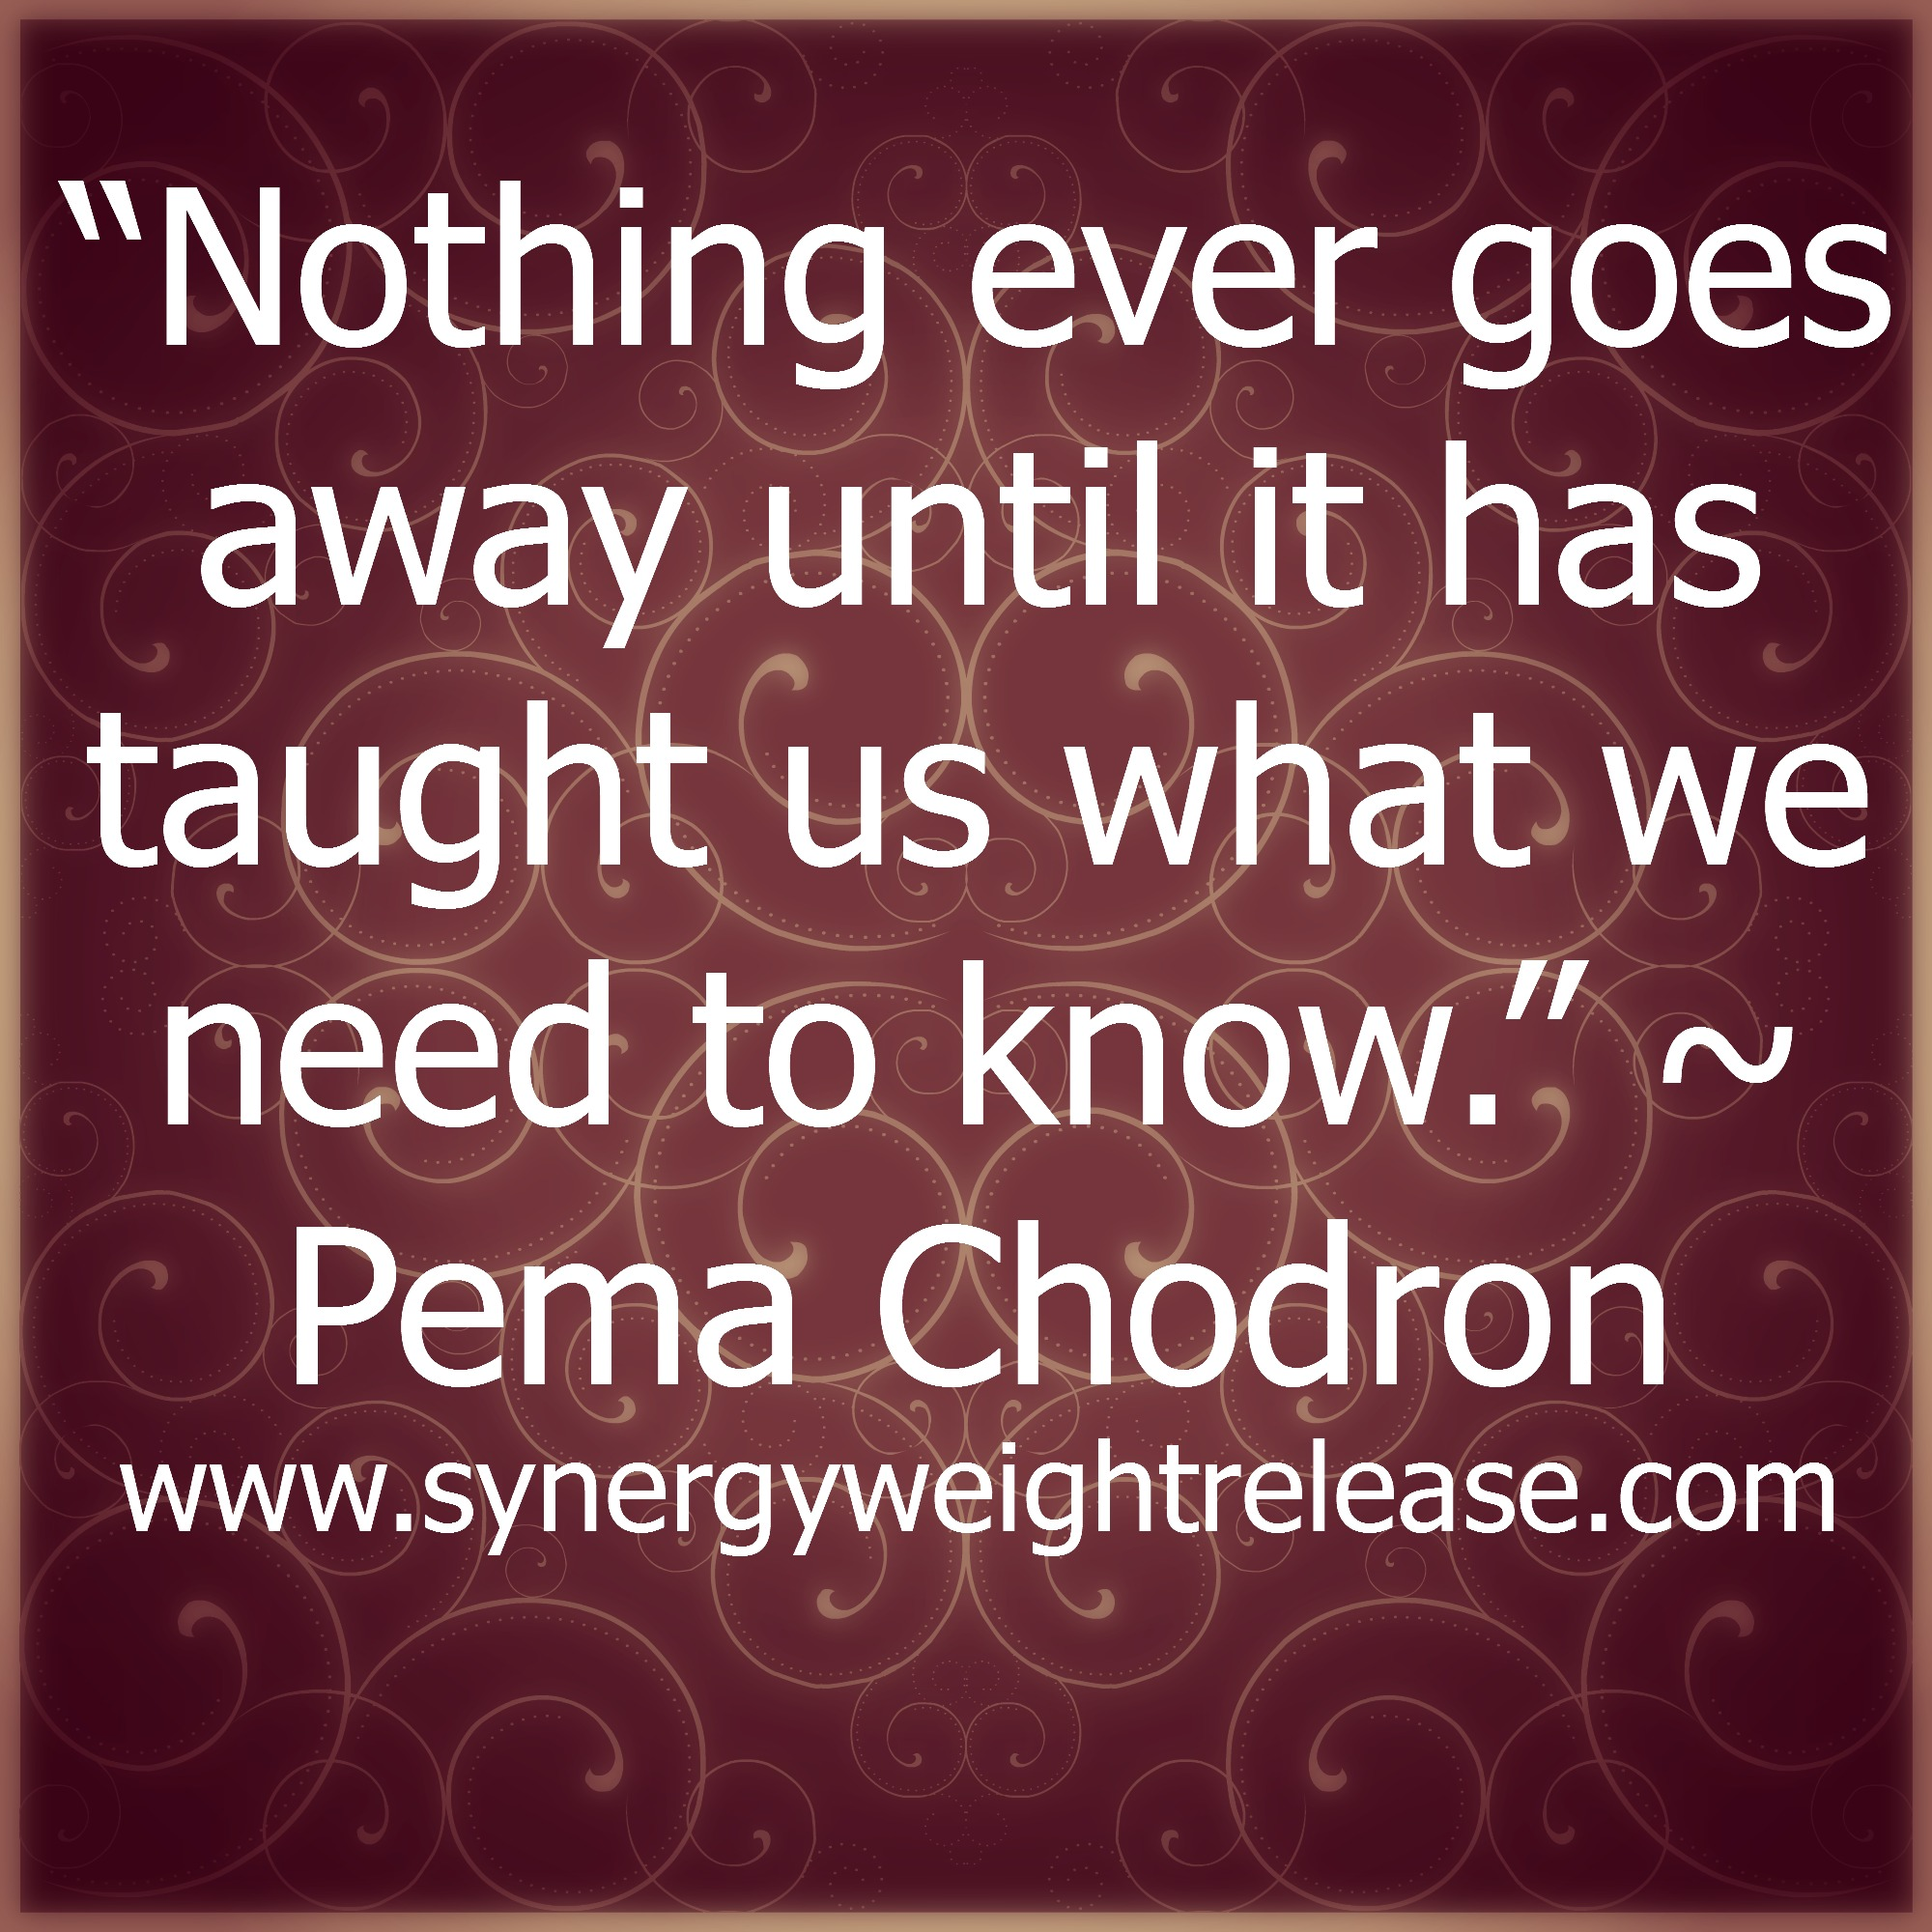 The Death Cure Quotes Quotesgram: Death Quotes Pema Chodron. QuotesGram